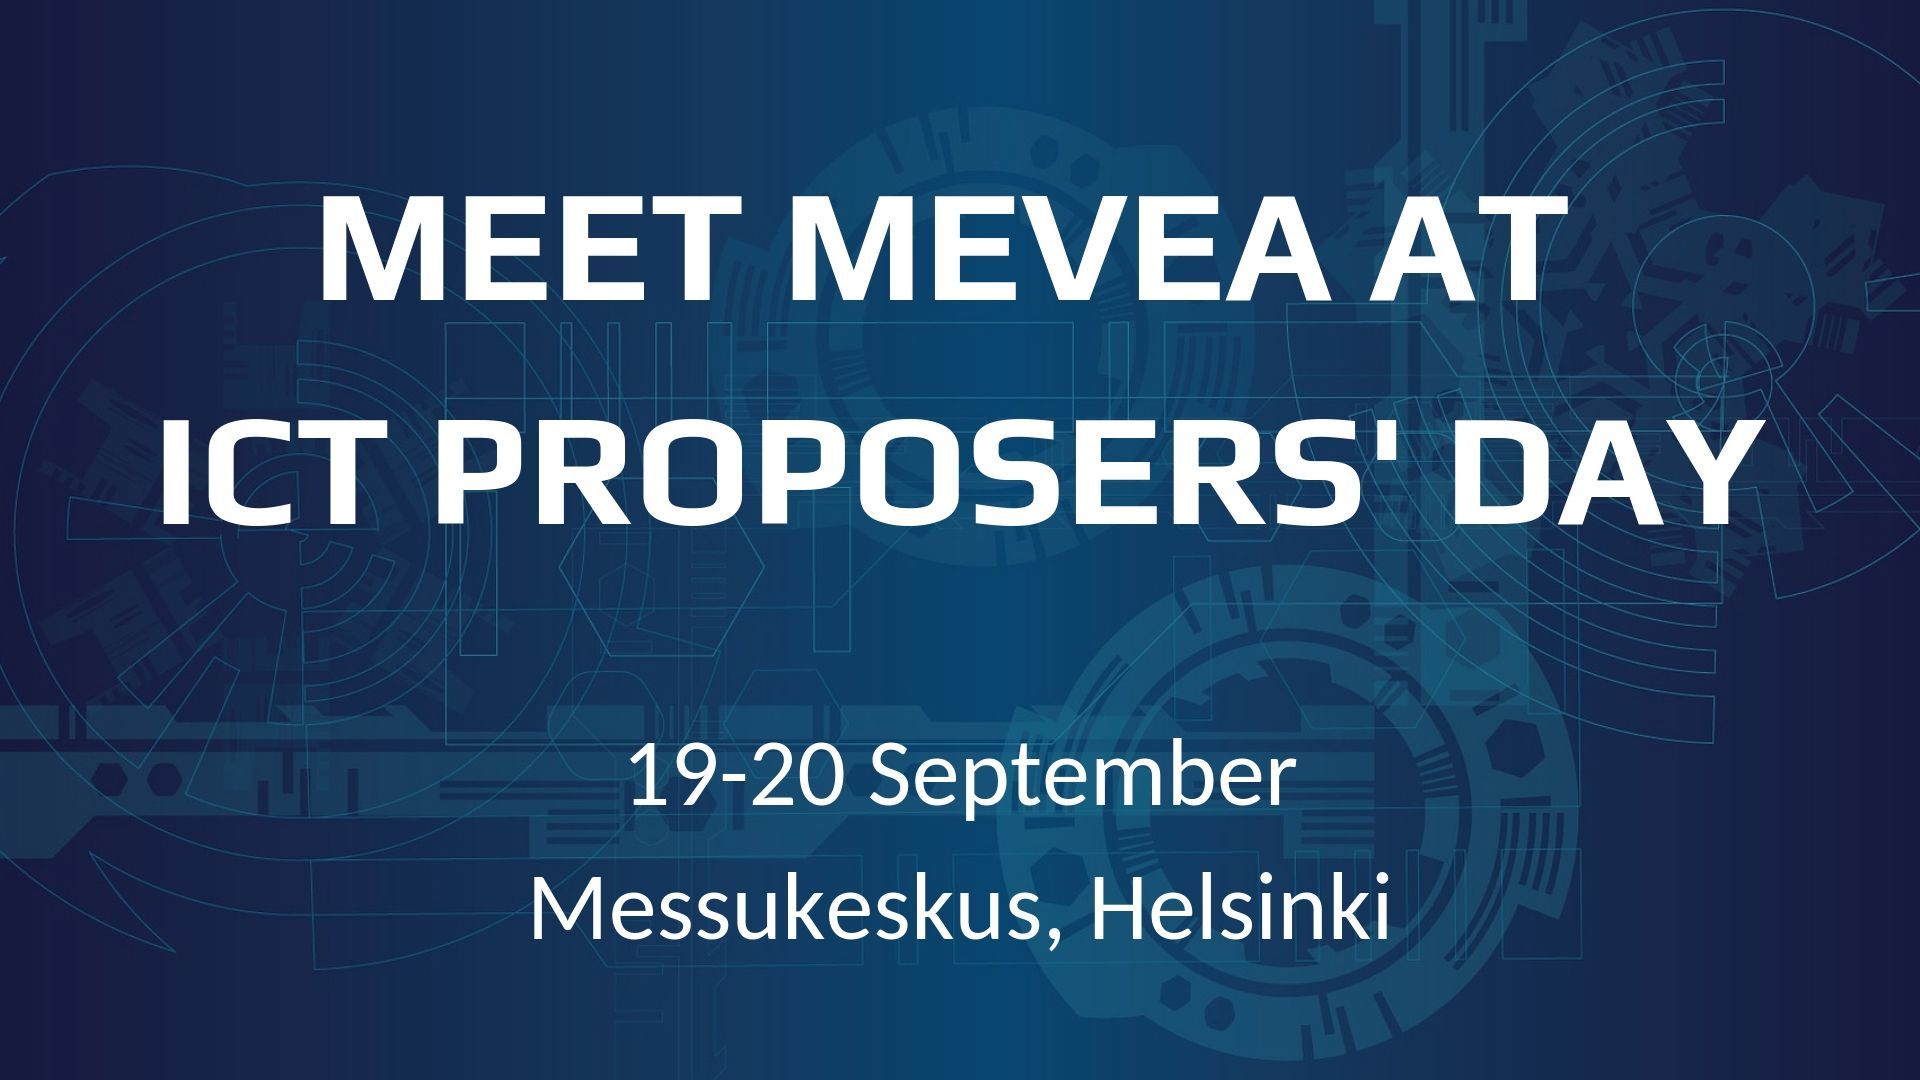 The Greatest Finnish Digital Innovations at ICT Proposers' Day